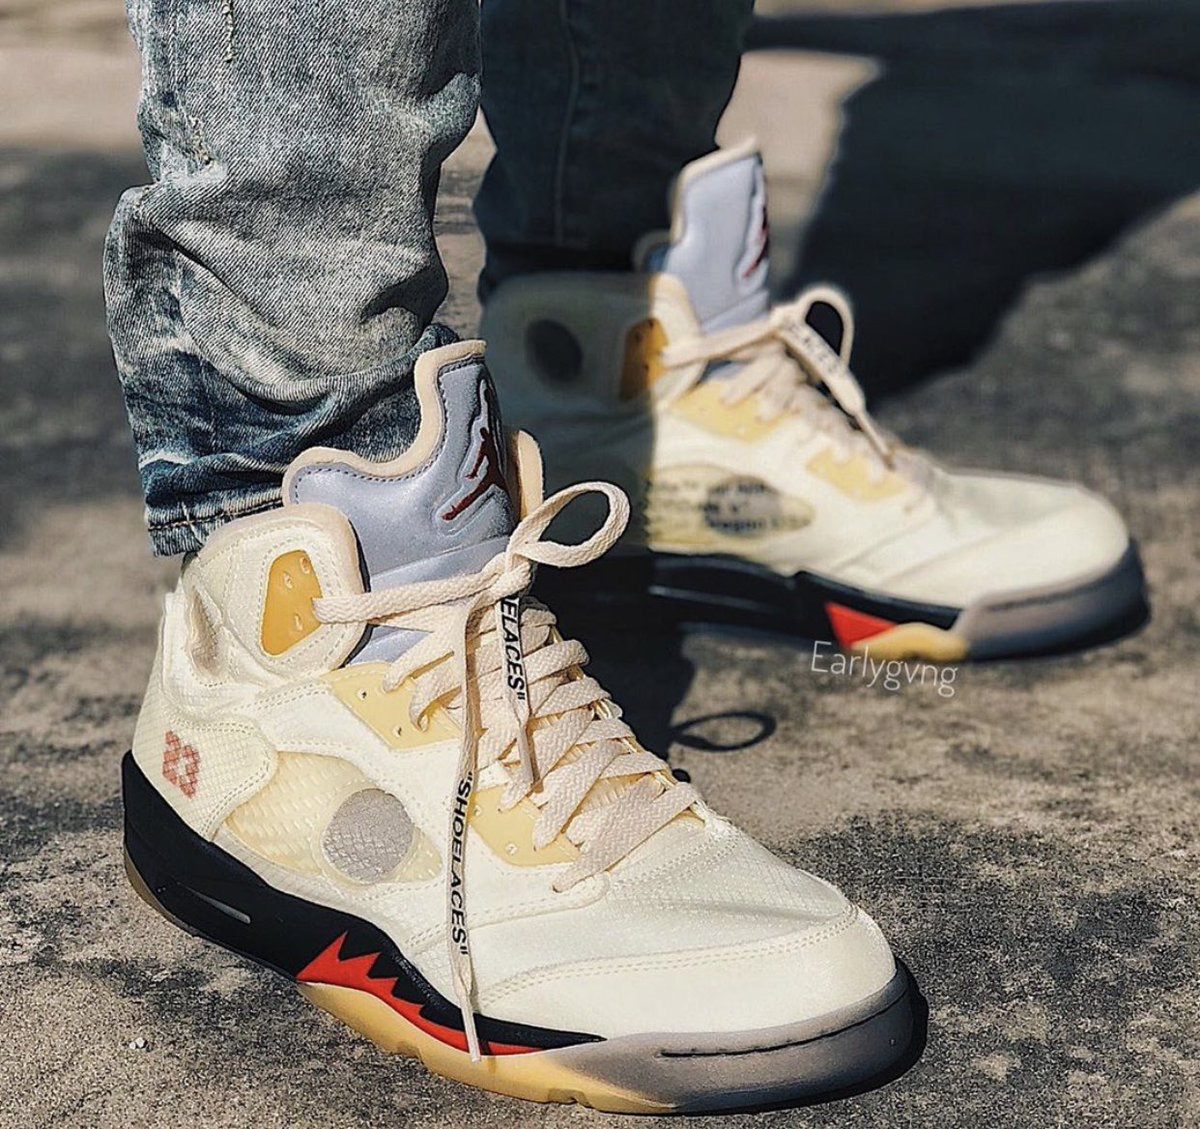 off-white-nike-air-jordan-5-fire-red-release-info